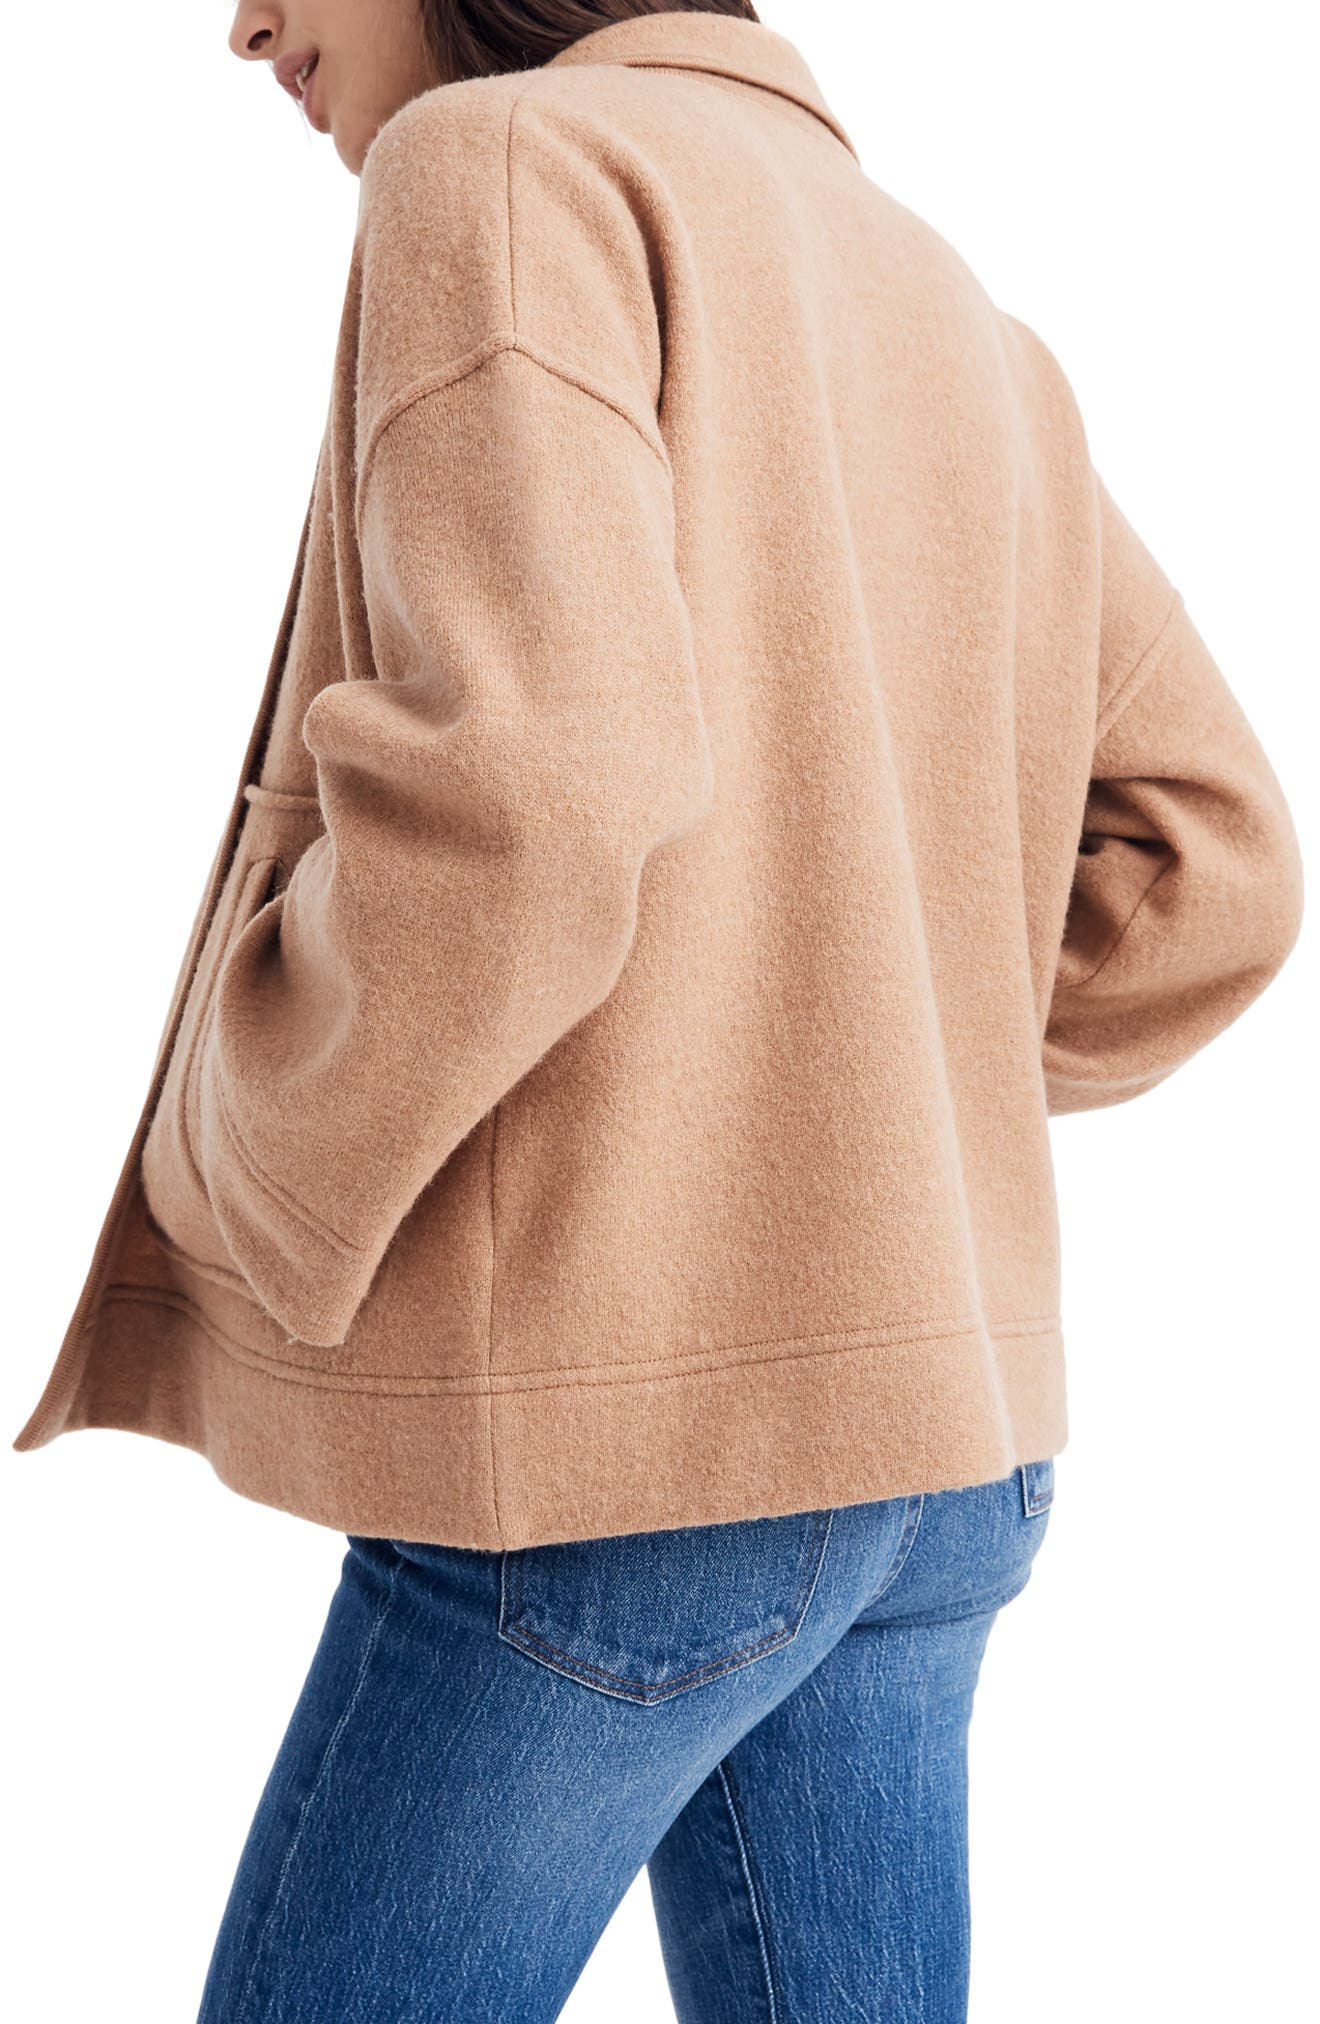 MADEWELL, Lisbon Sweater Jacket, Alternate thumbnail 2, color, 200